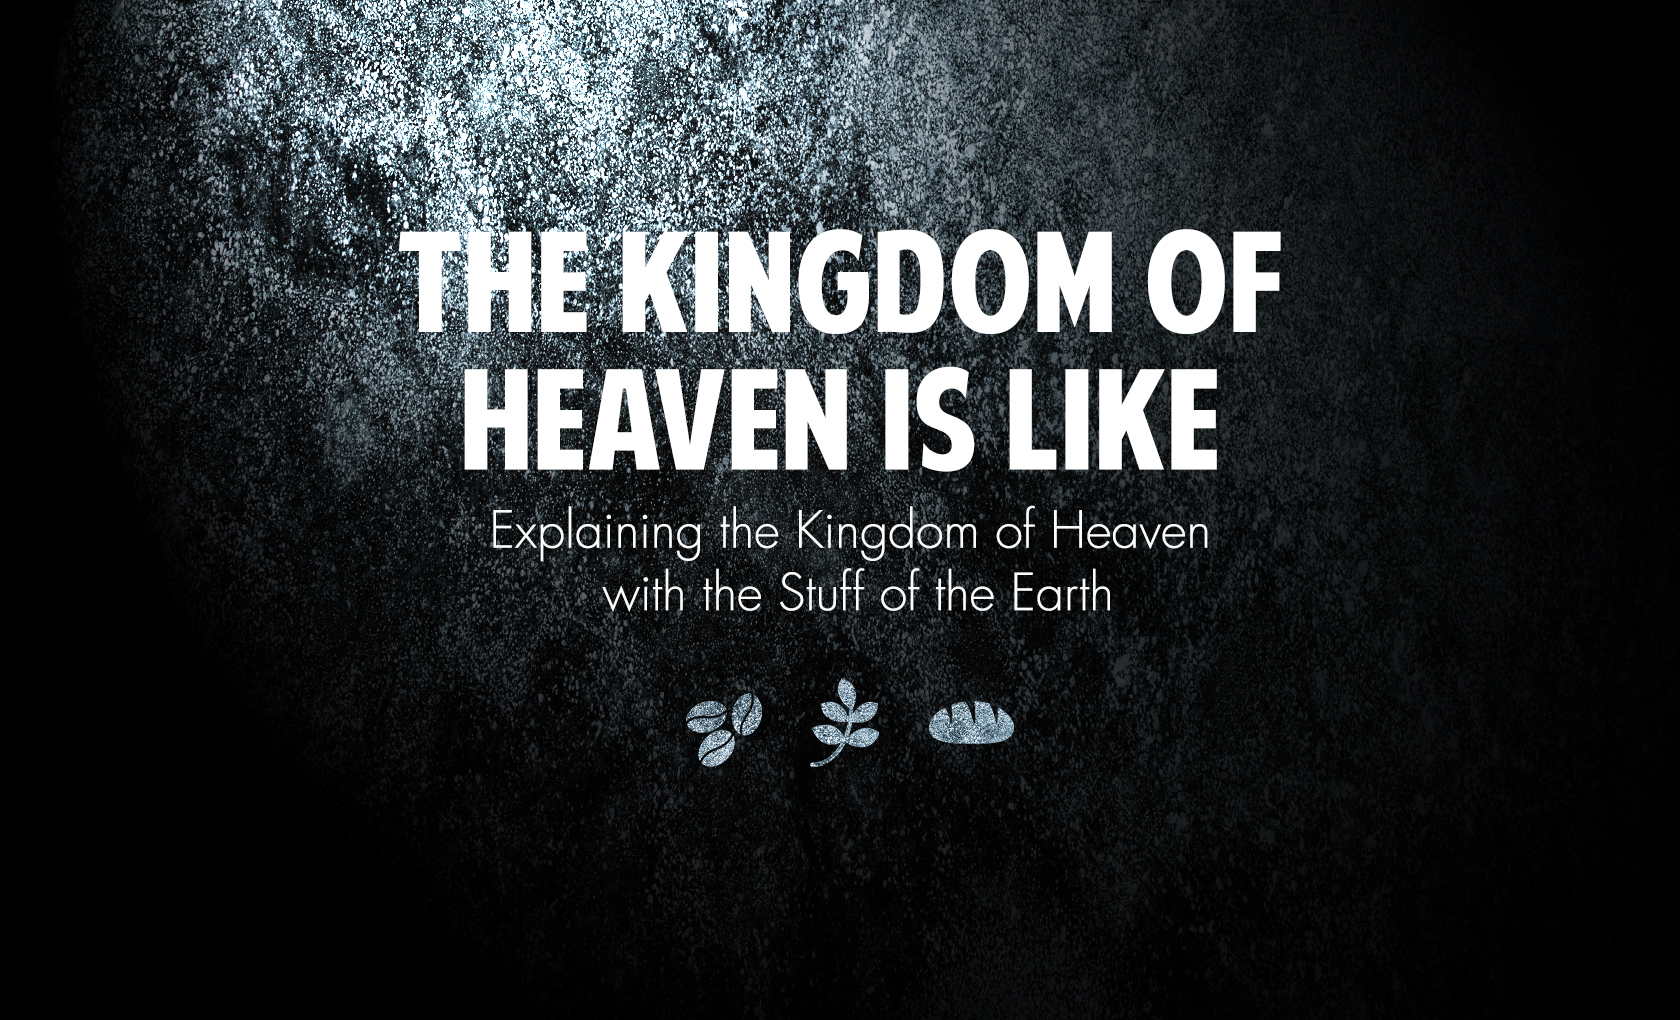 KingdomOfHeaven_SermonSeries_graphic_LARGE.jpg